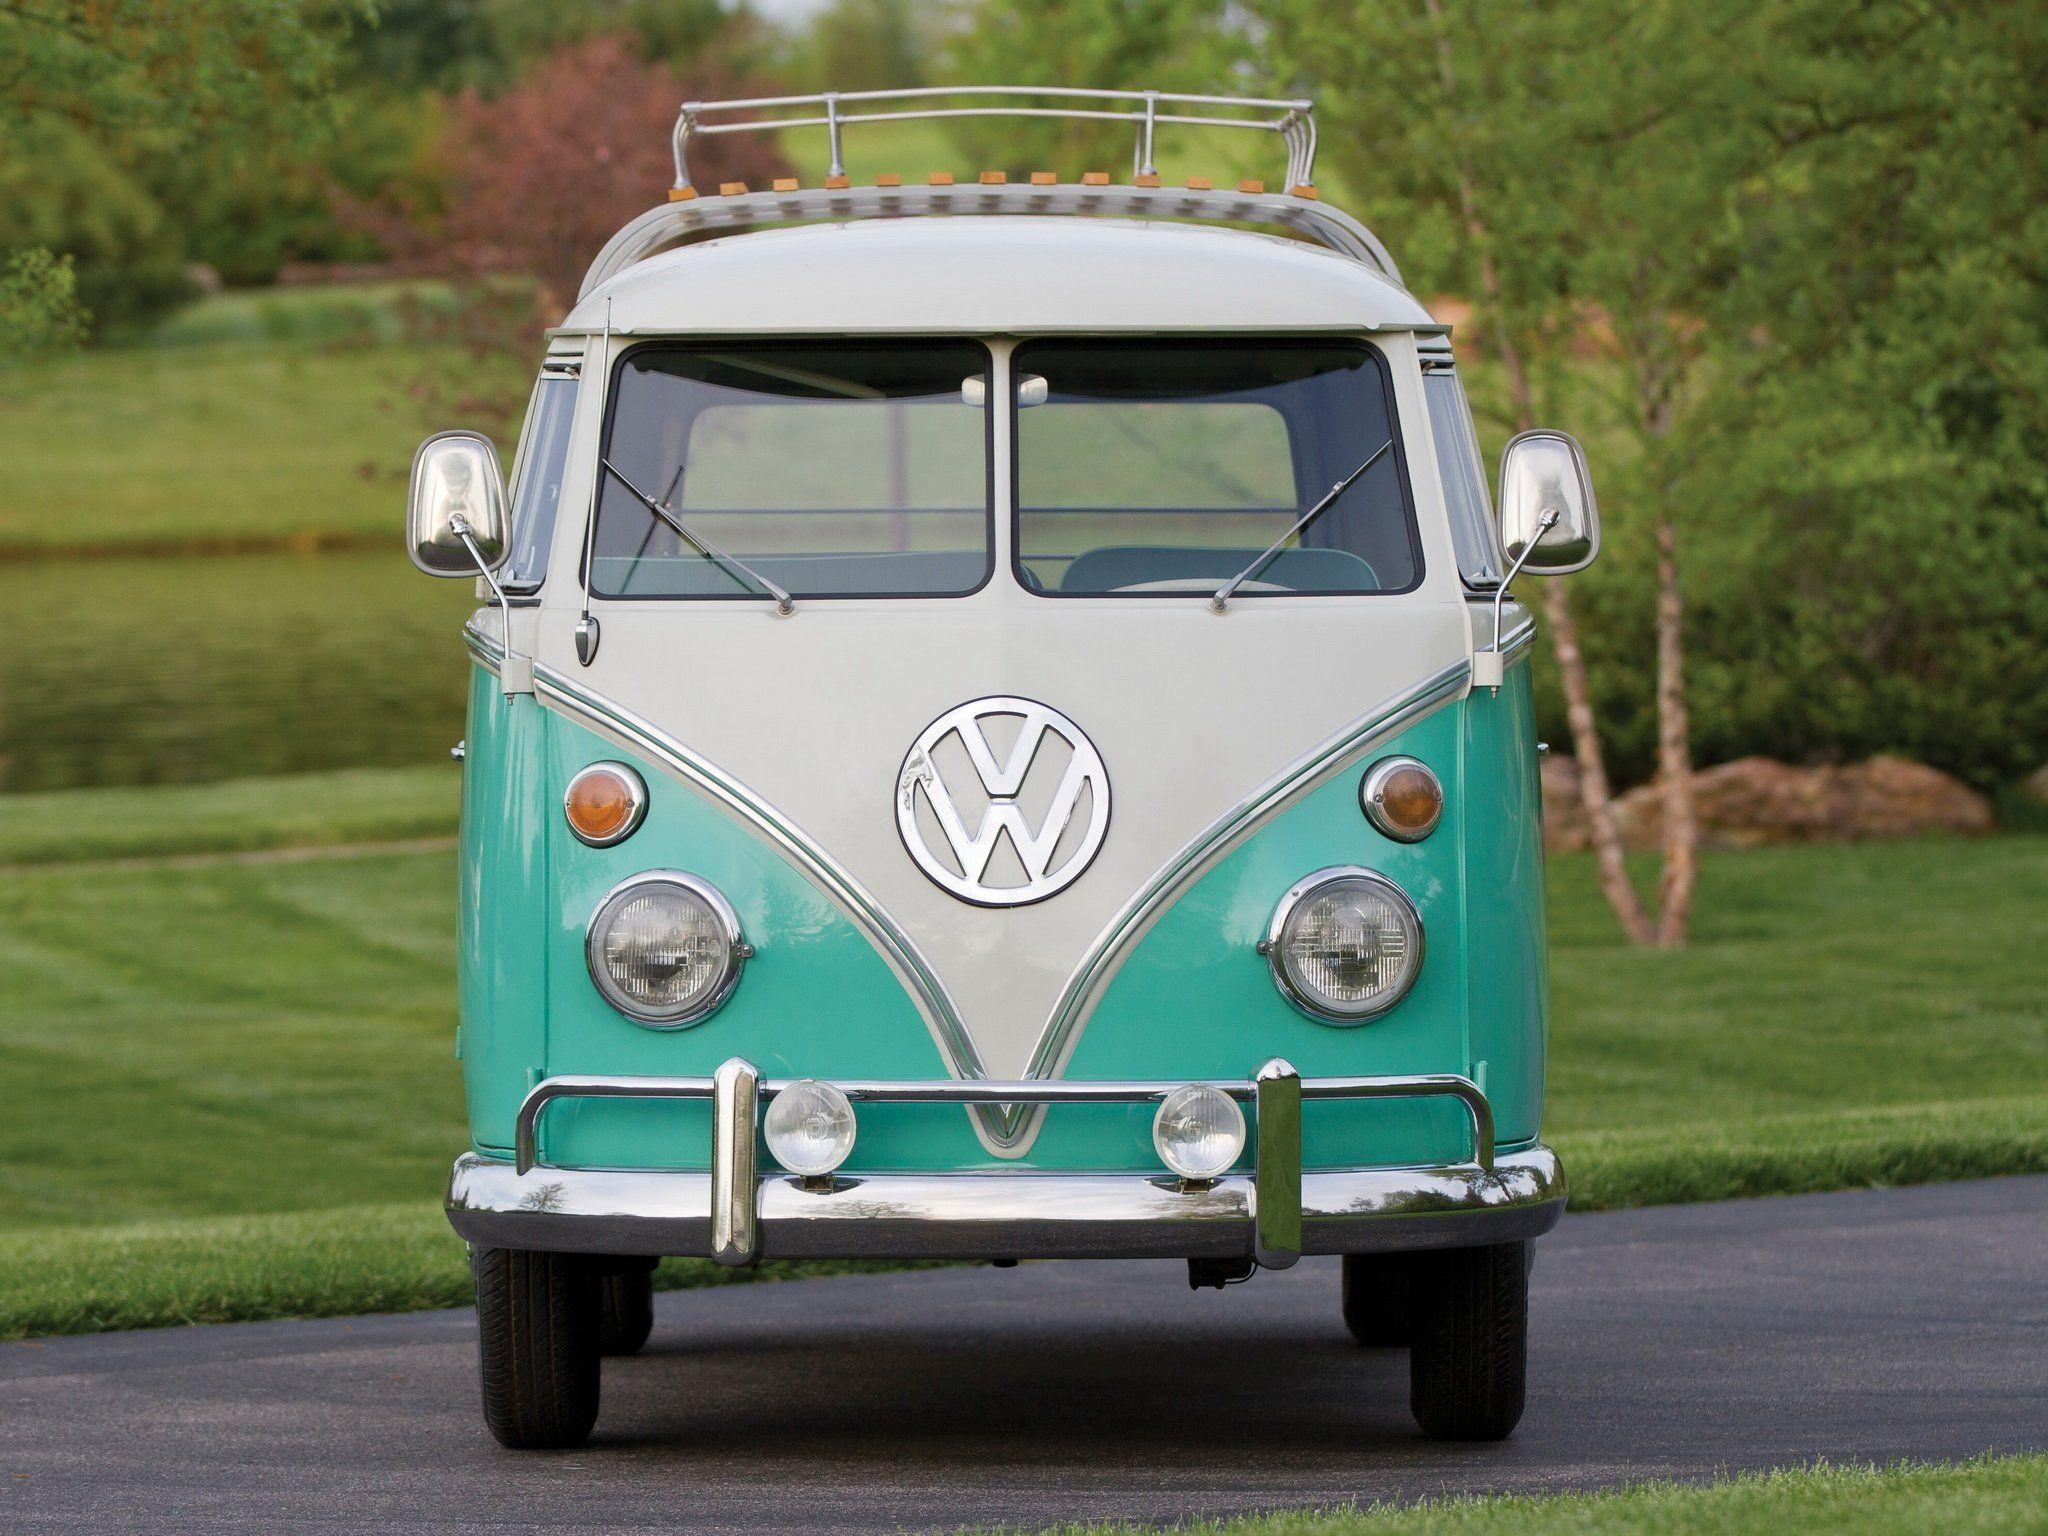 Volkswagen Bus Wallpapers Wallpaper Cave